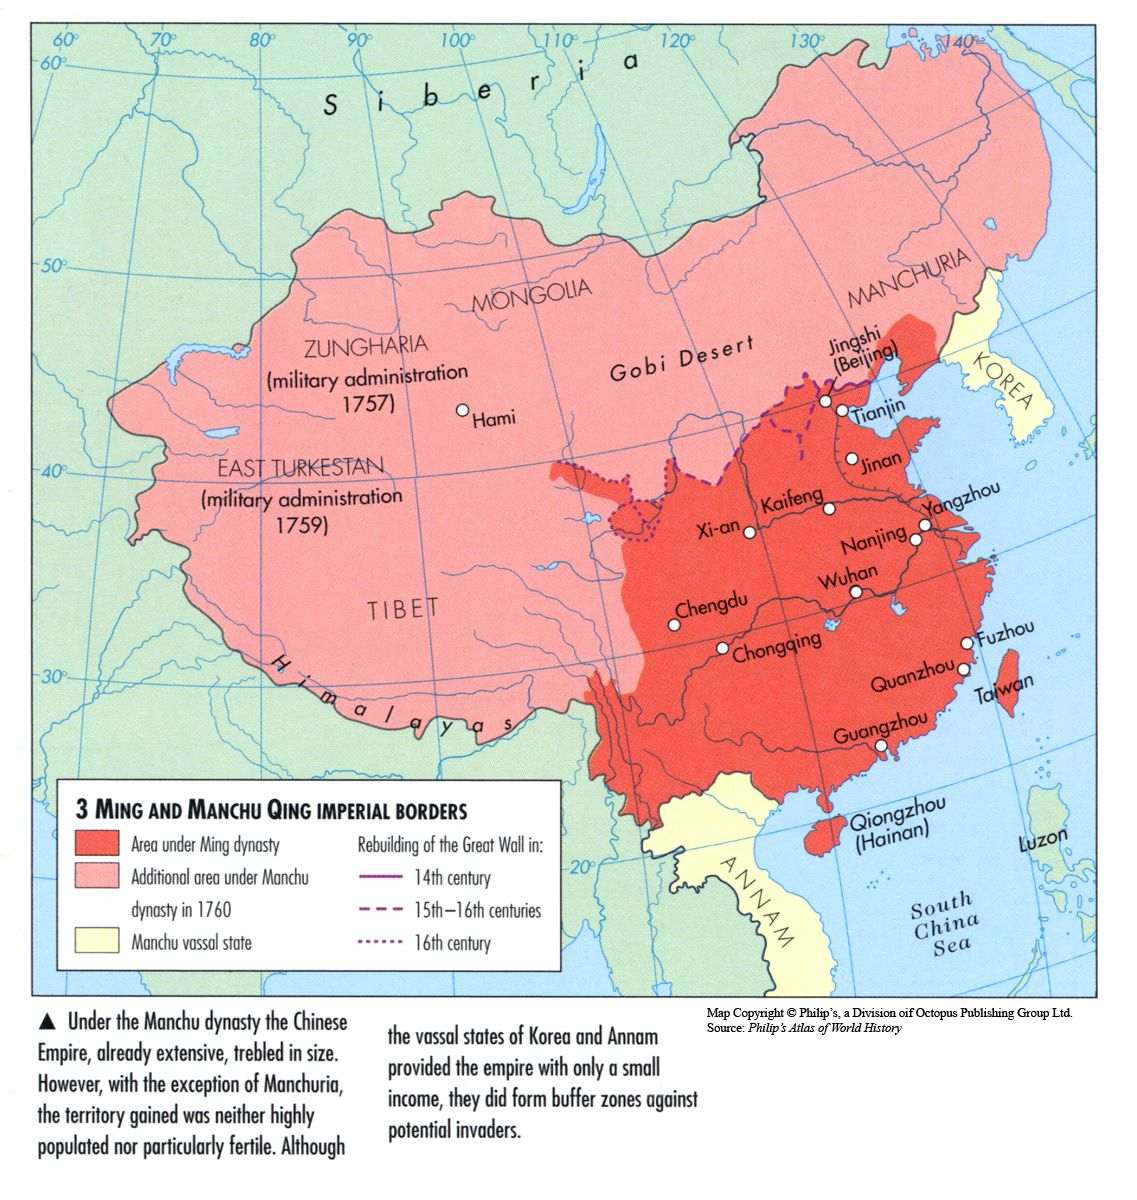 When the Manchu Qing pronounced Ching dynasty took power from the